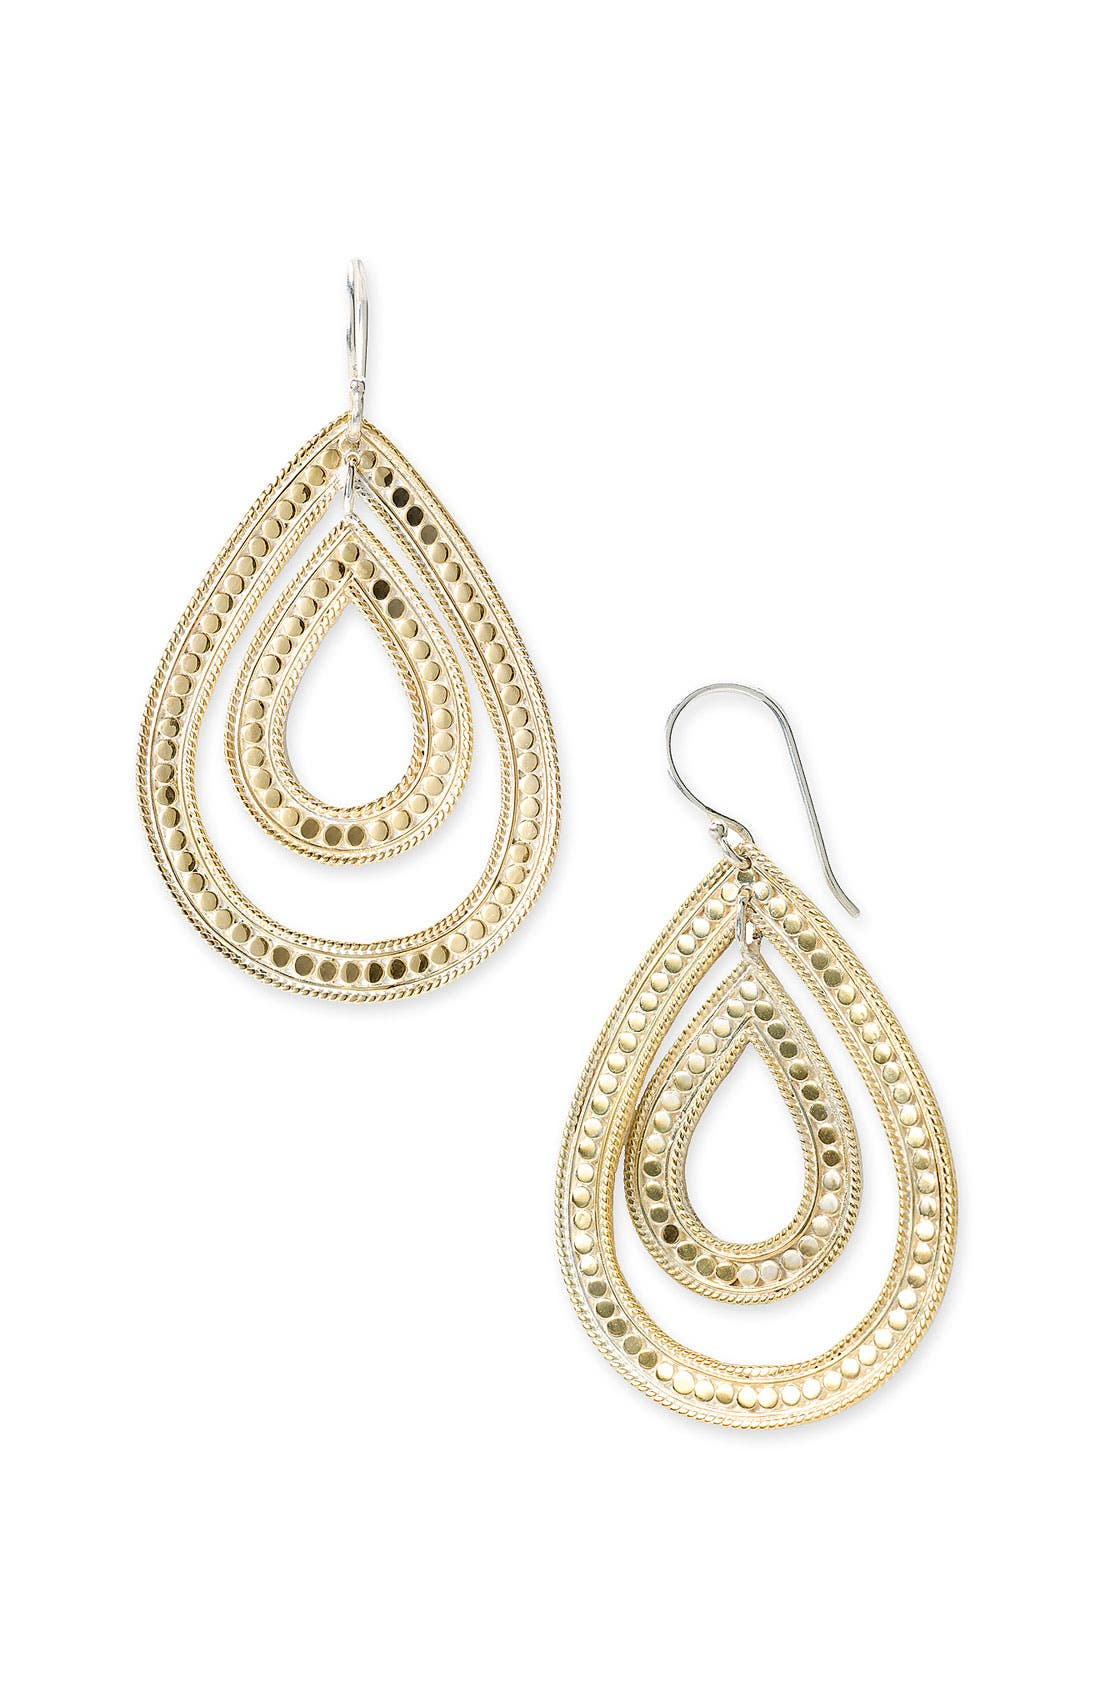 Alternate Image 1 Selected - Anna Beck 'Timor' Double Drop Earrings